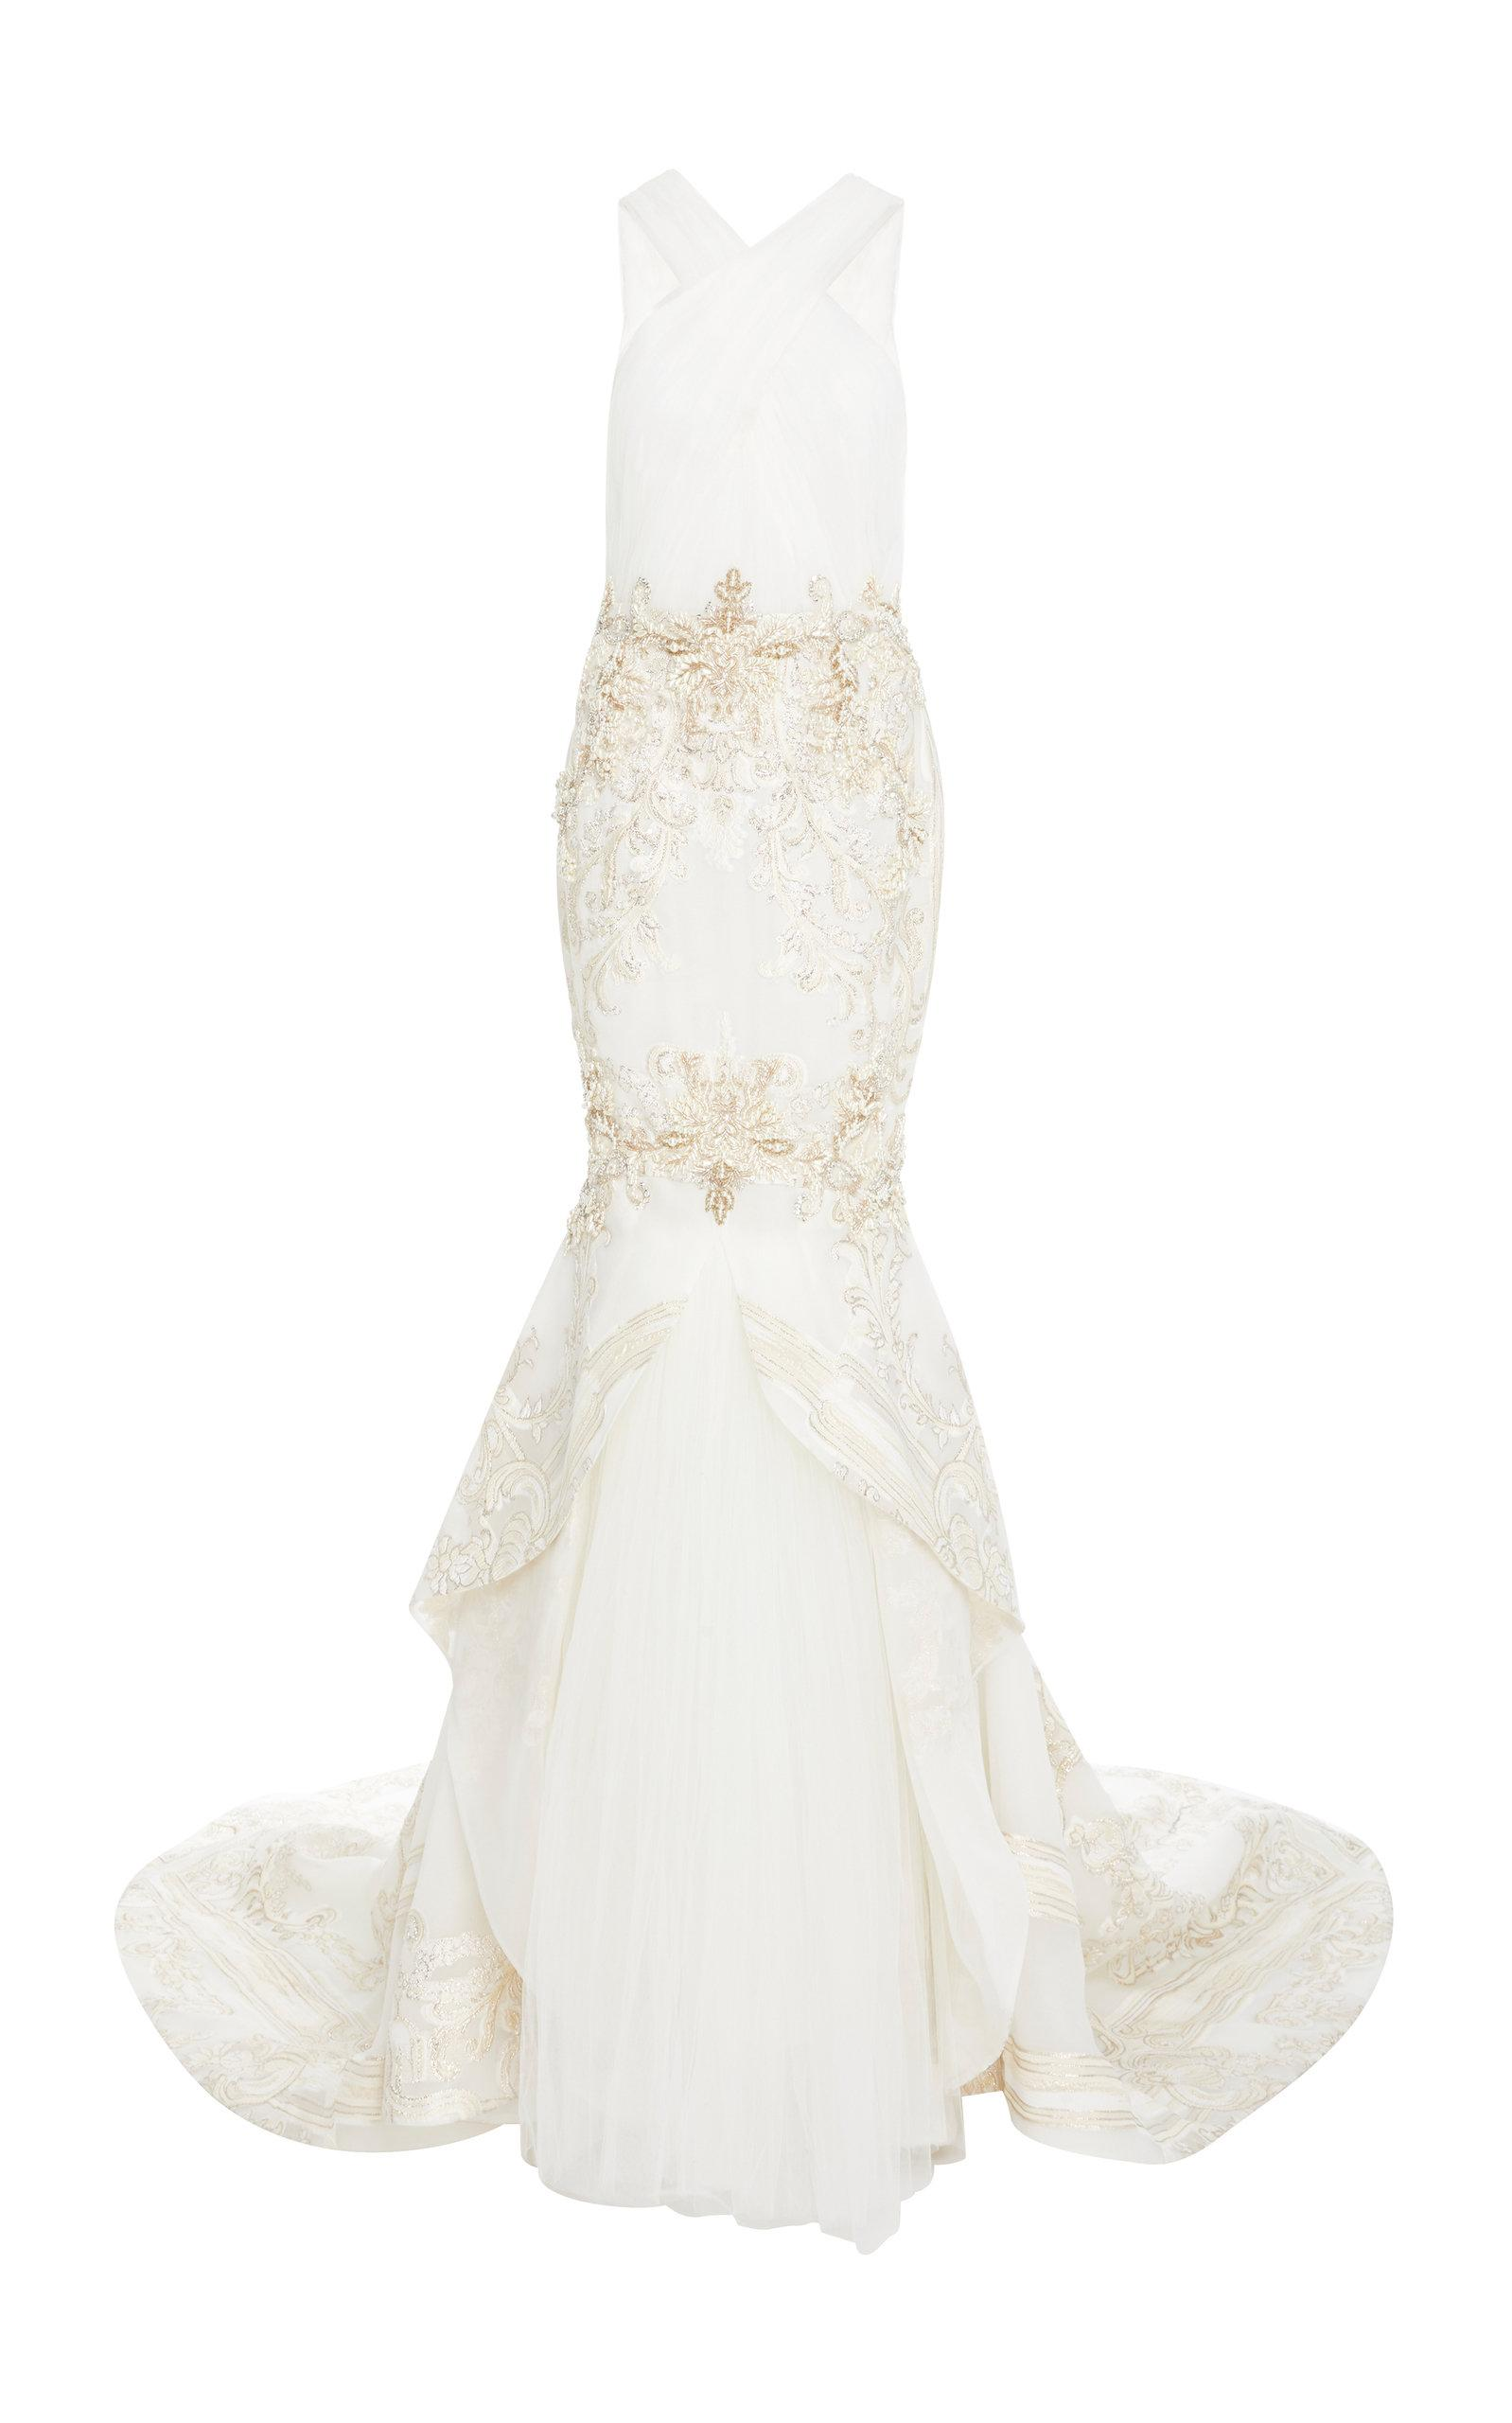 Pamella Roland Baroque Gate Fil-coupe Gown In White